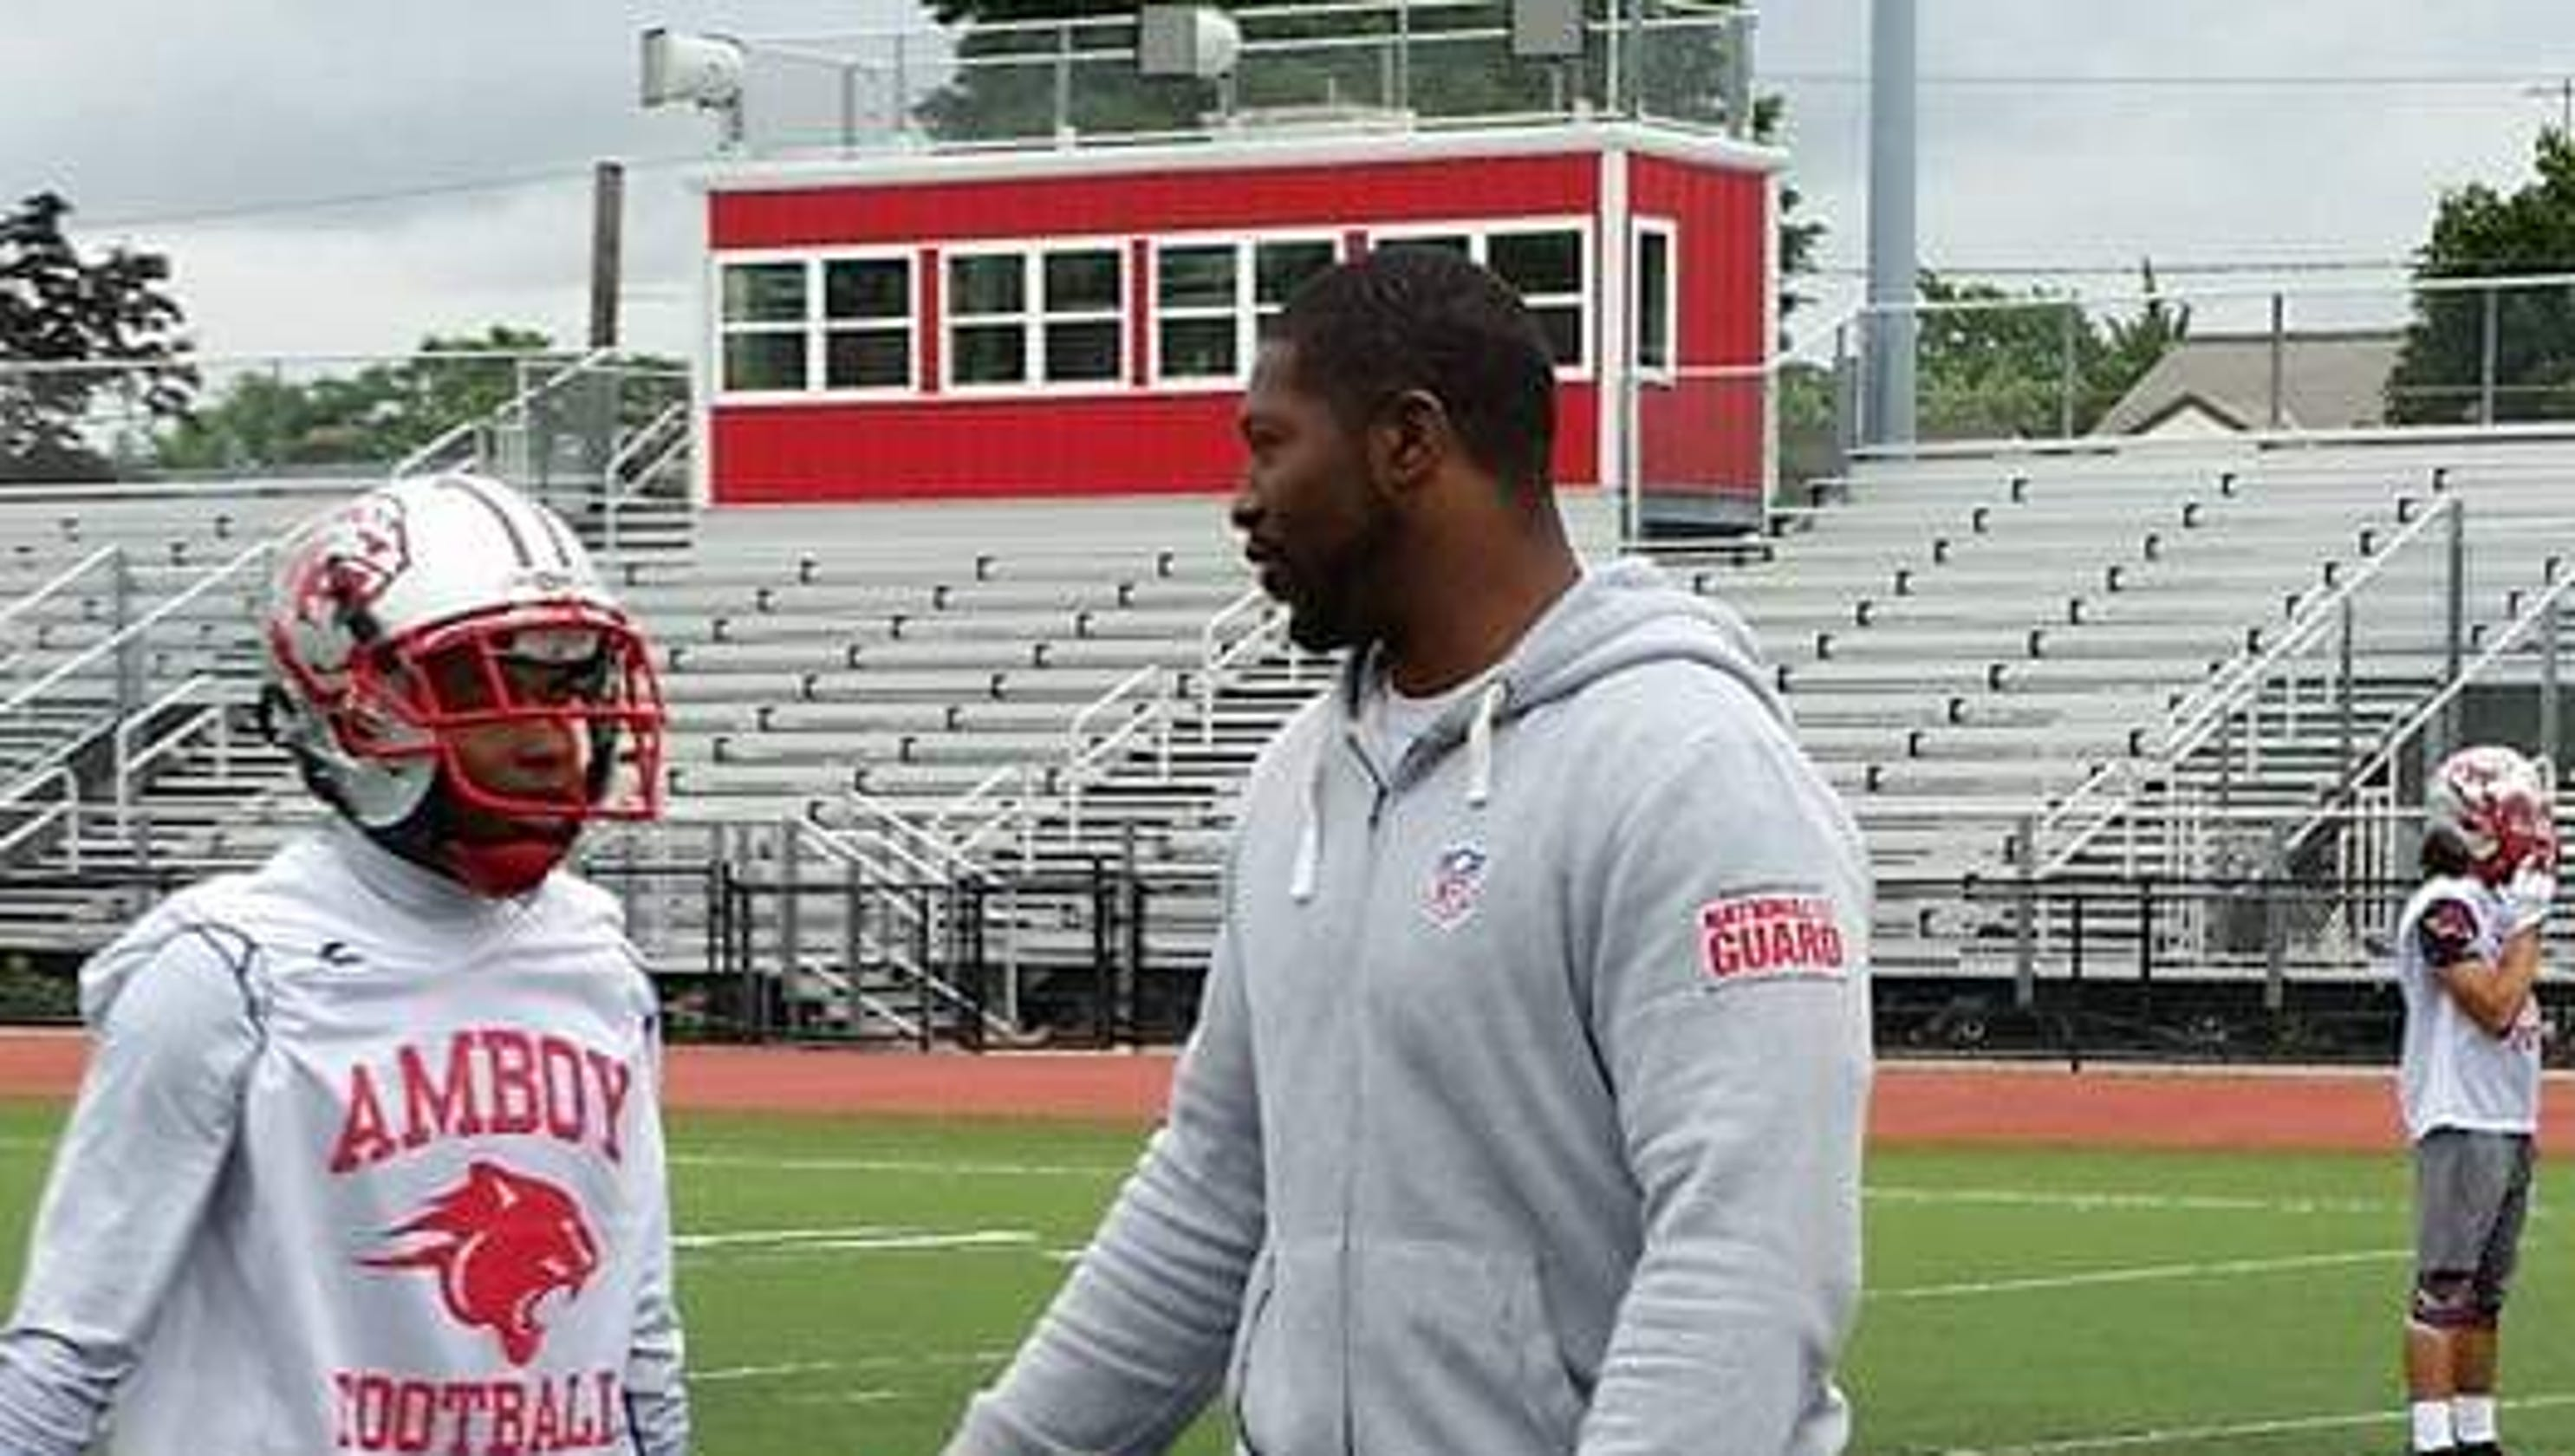 NJ Football: Clark Officially Approved As Perth Amboy's Coach